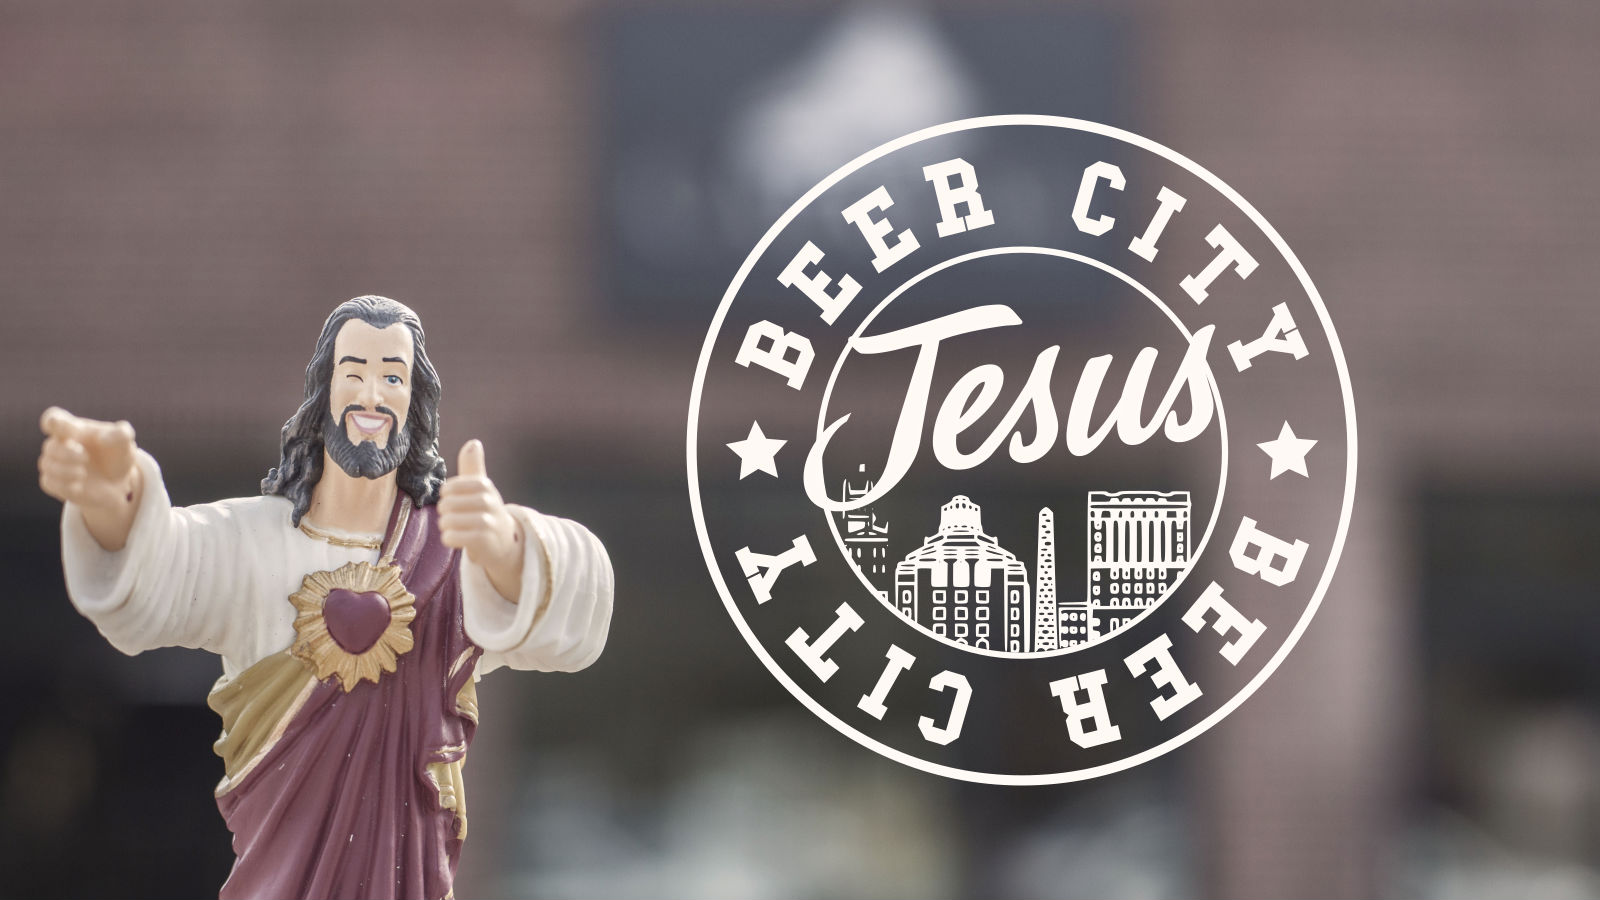 Beer City Jesus    February - April 2017